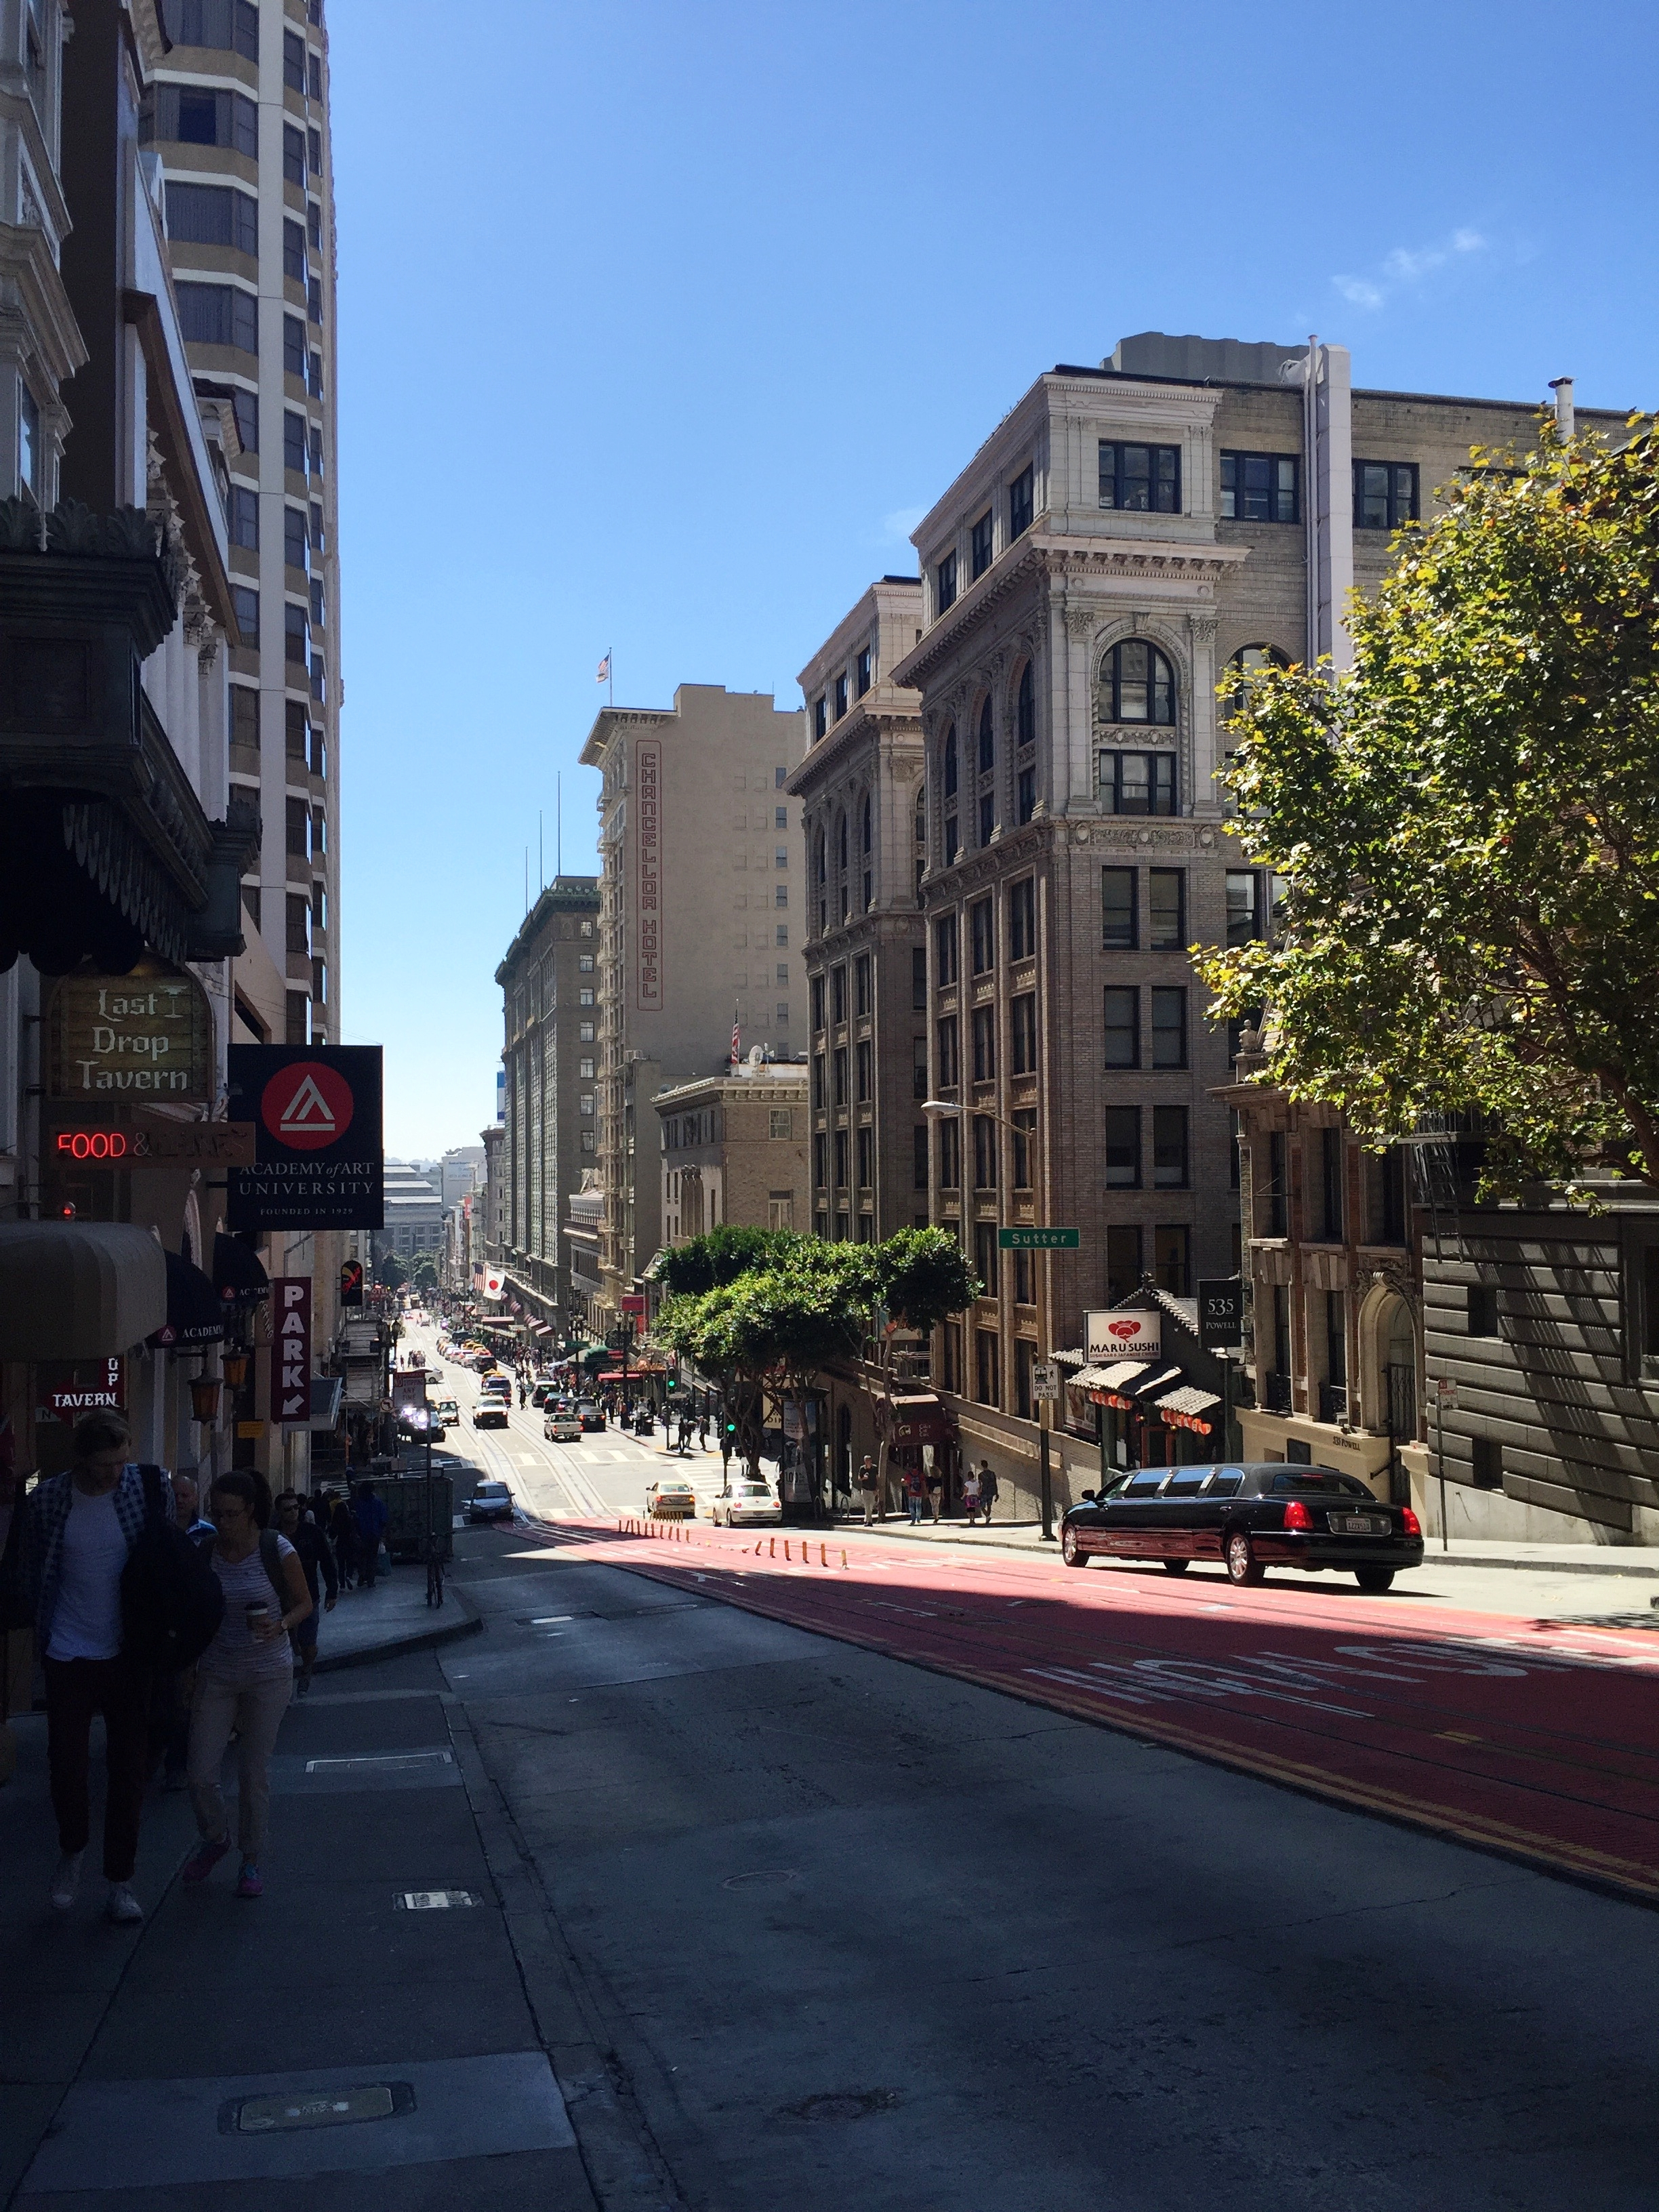 sanfrancisco,streets,city,limo,citylife,buildings,blogger,lasvegasblogger